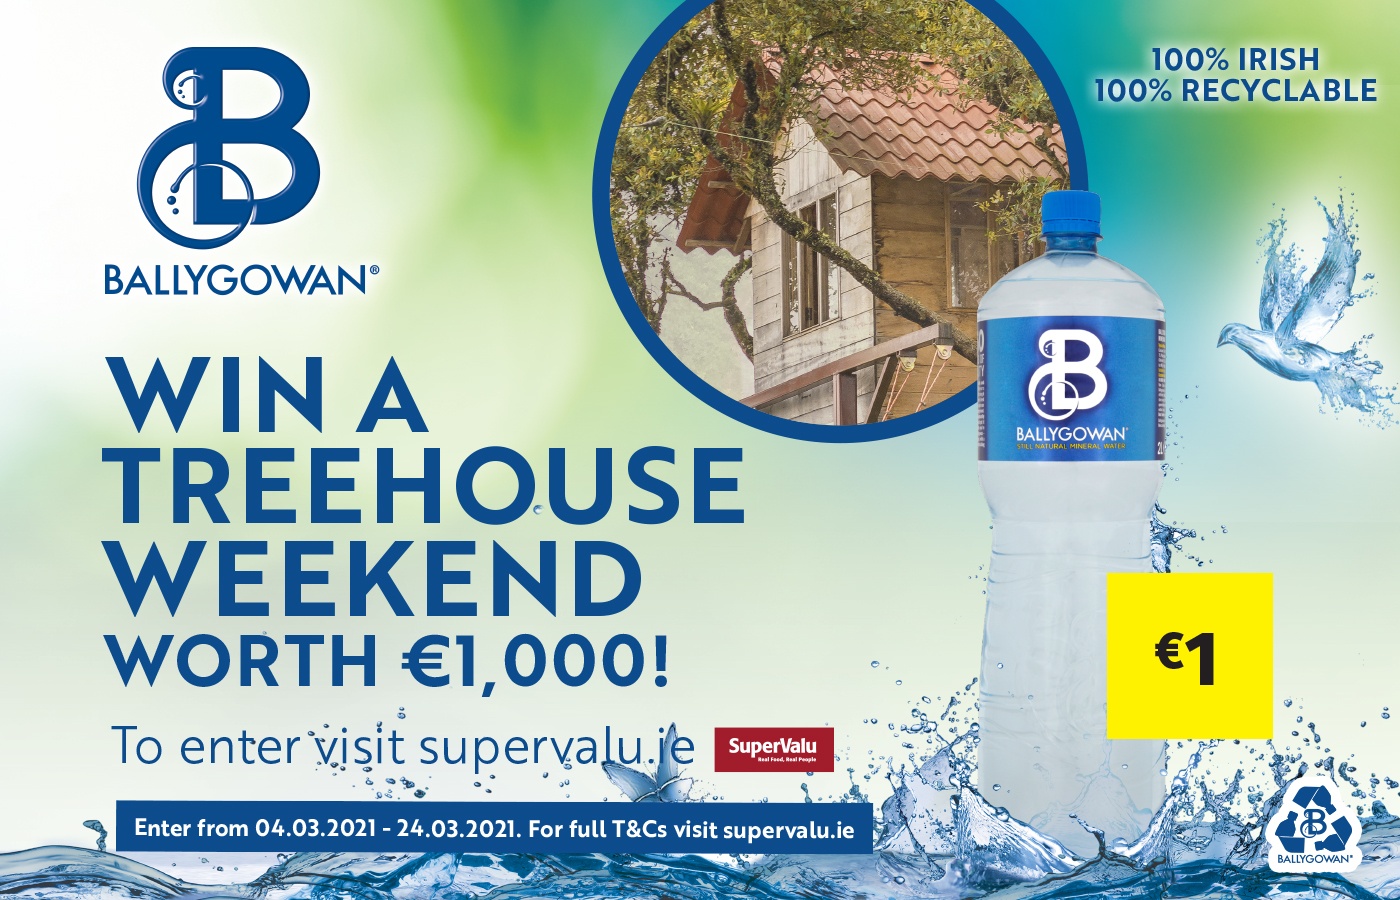 Win a treehouse weekend worth €1000